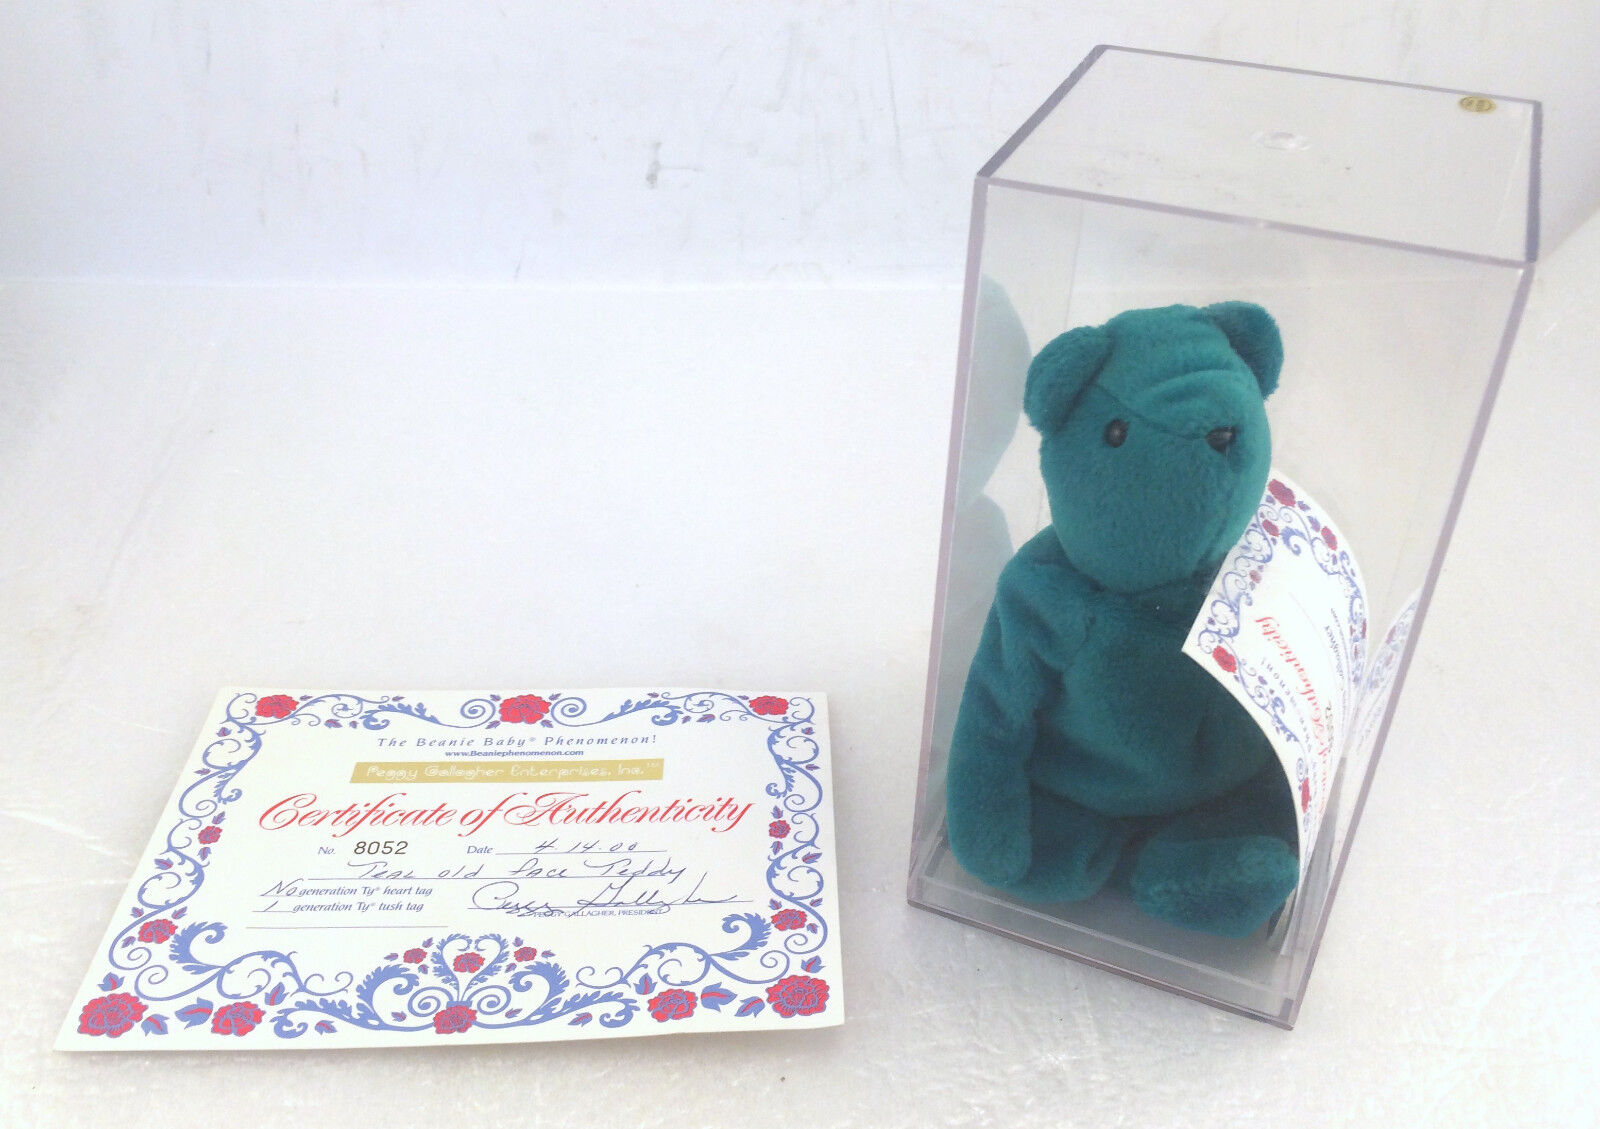 TY Beannie Baby Teal Old Face Teddy with Peggy Gallagher No. 8052 COA